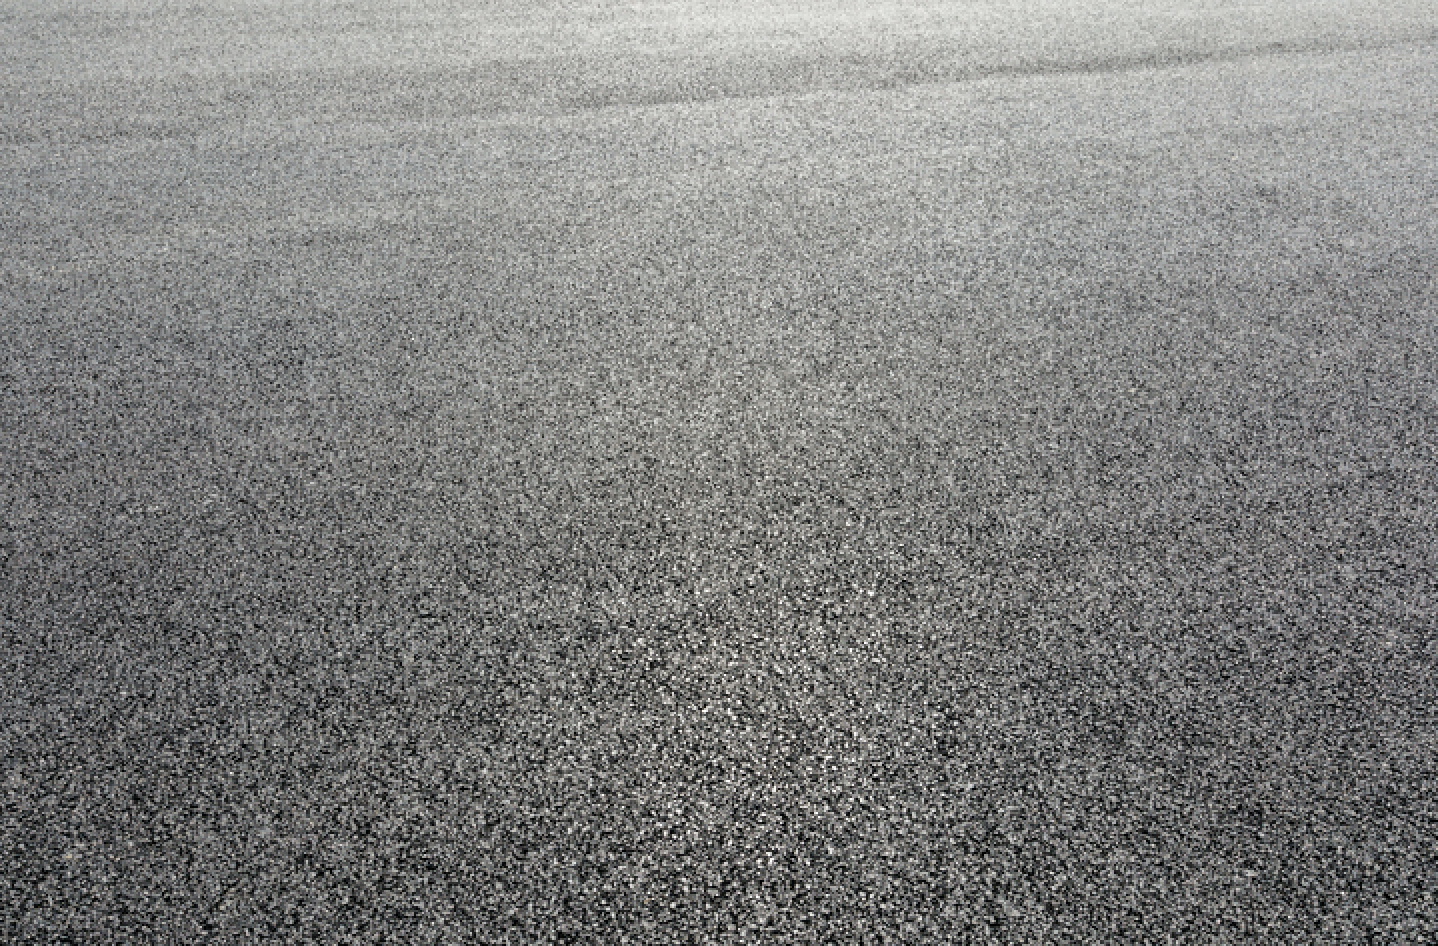 Sealcoated asphalt surface at a commercial parking lot in Gainesville, Florida